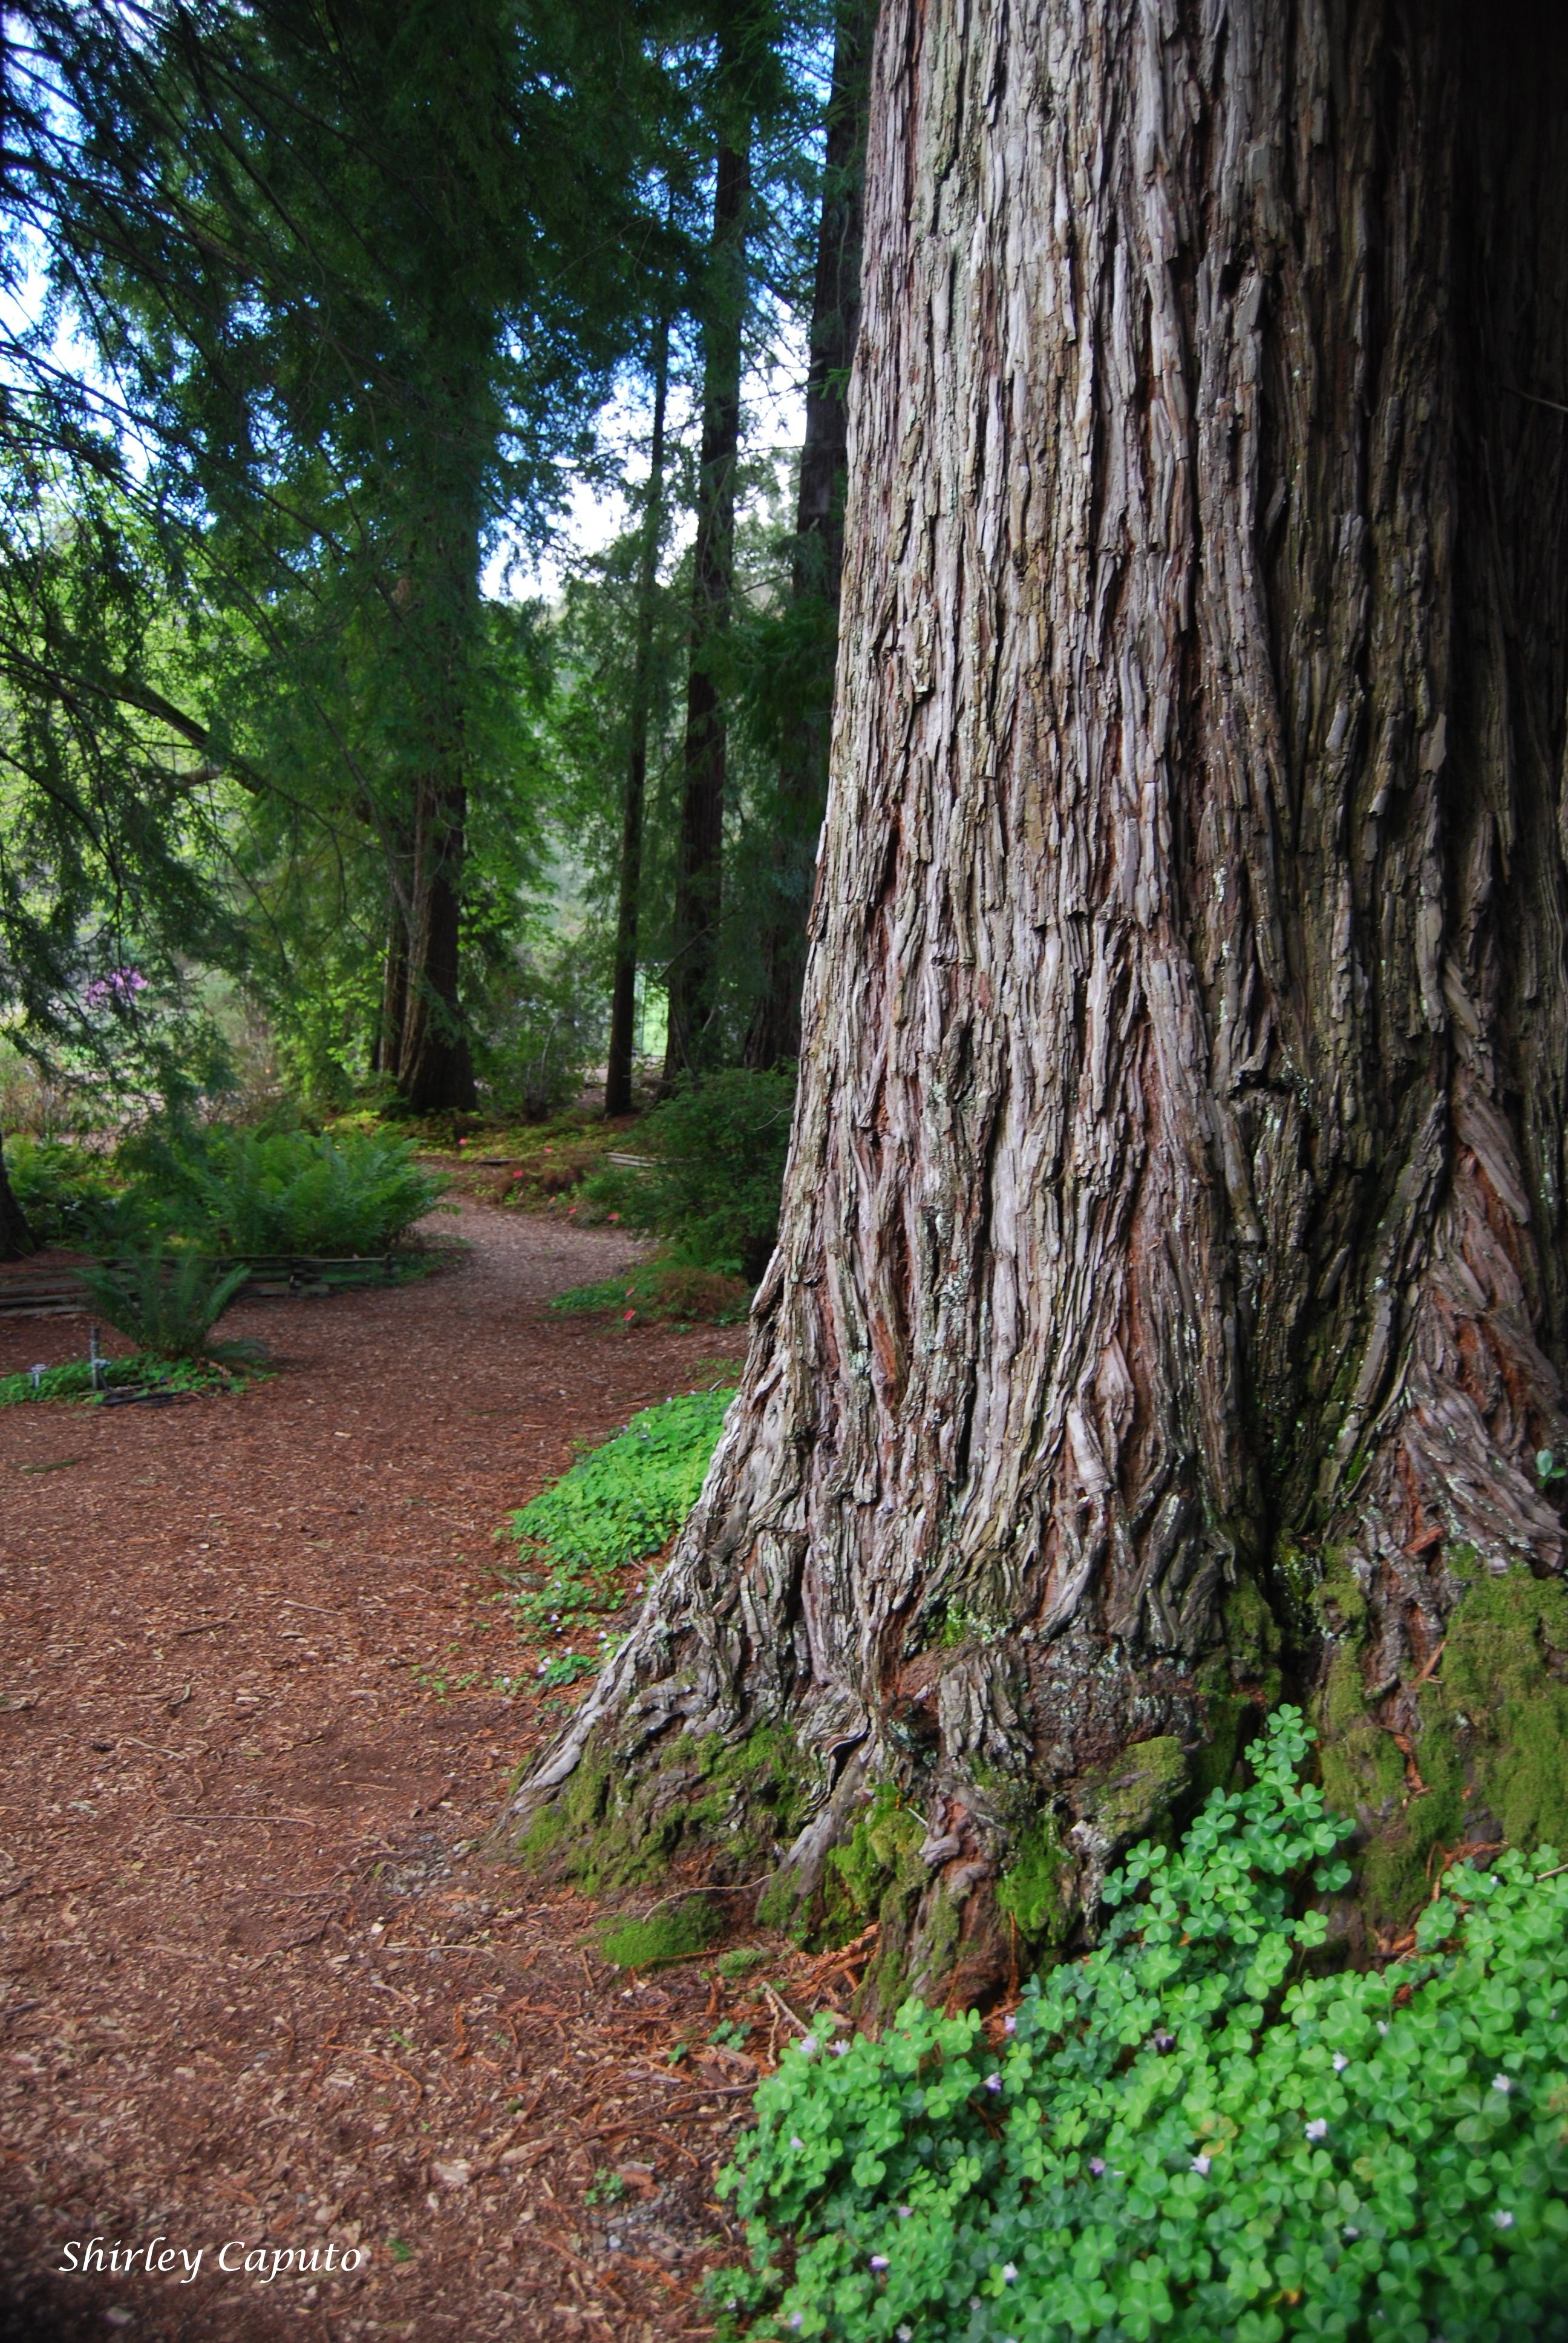 Landscaping With Redwood Trees : Botanical garden redwood by s caputo magnificent trees